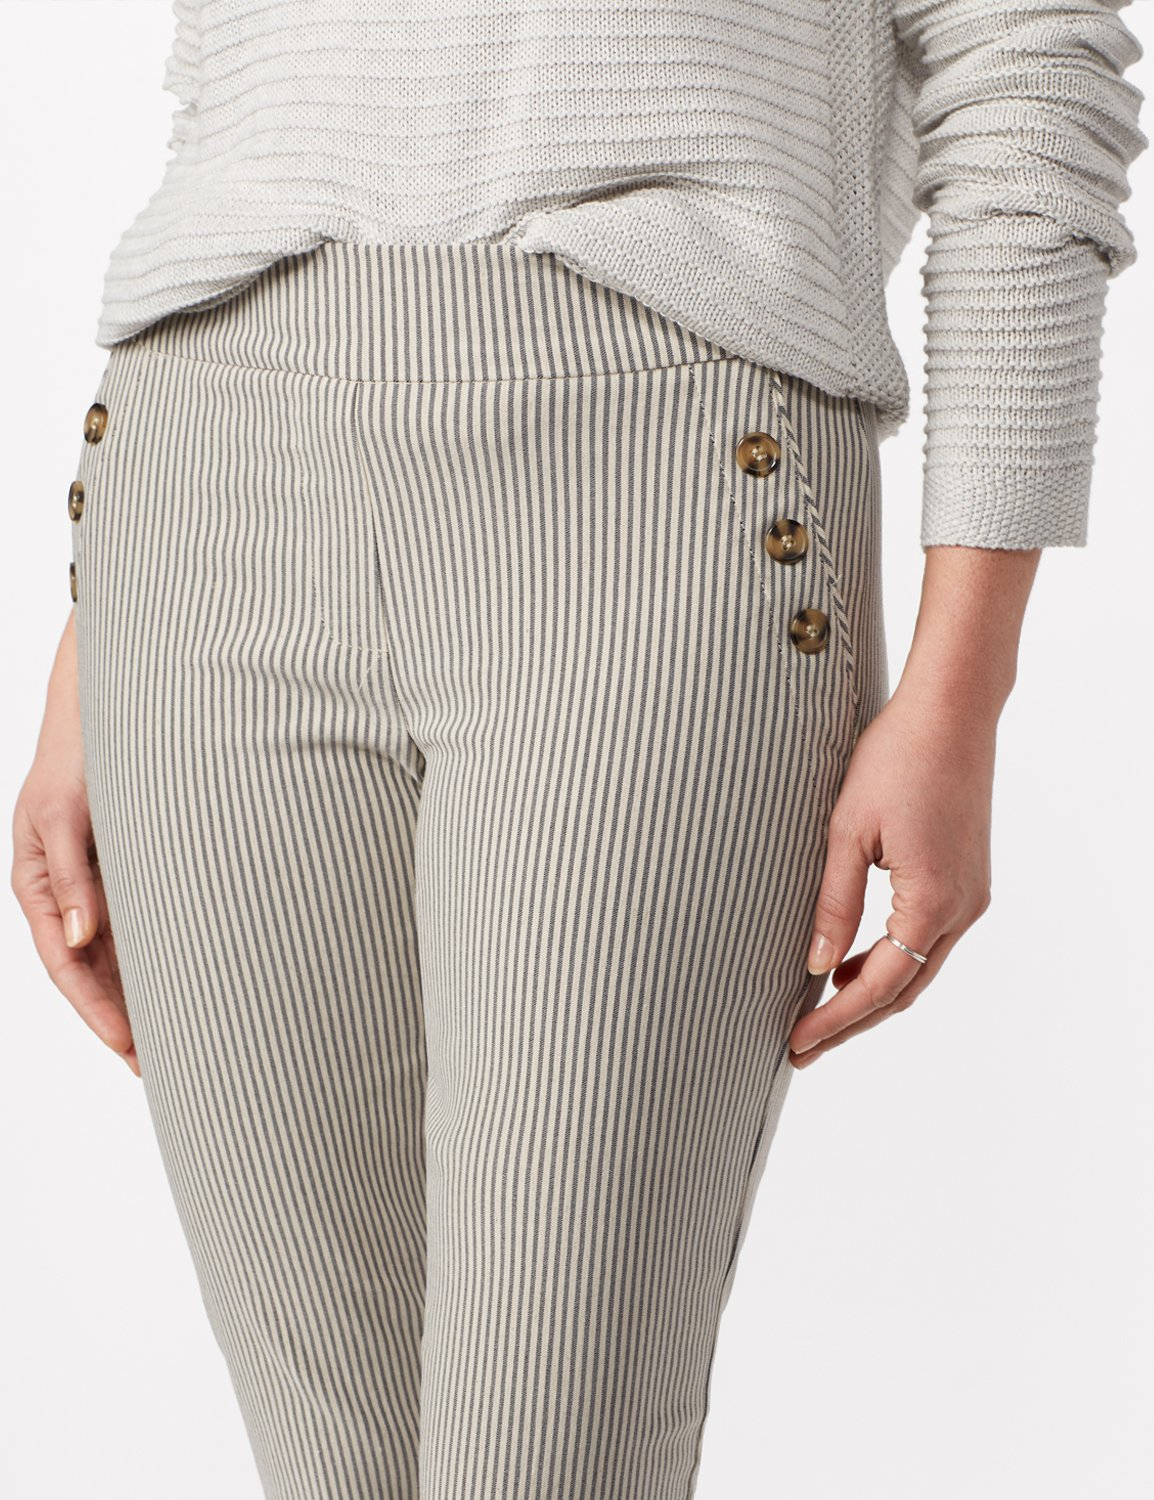 Stripe Ankle Pants with Button Pockets - Black/linen - Detail